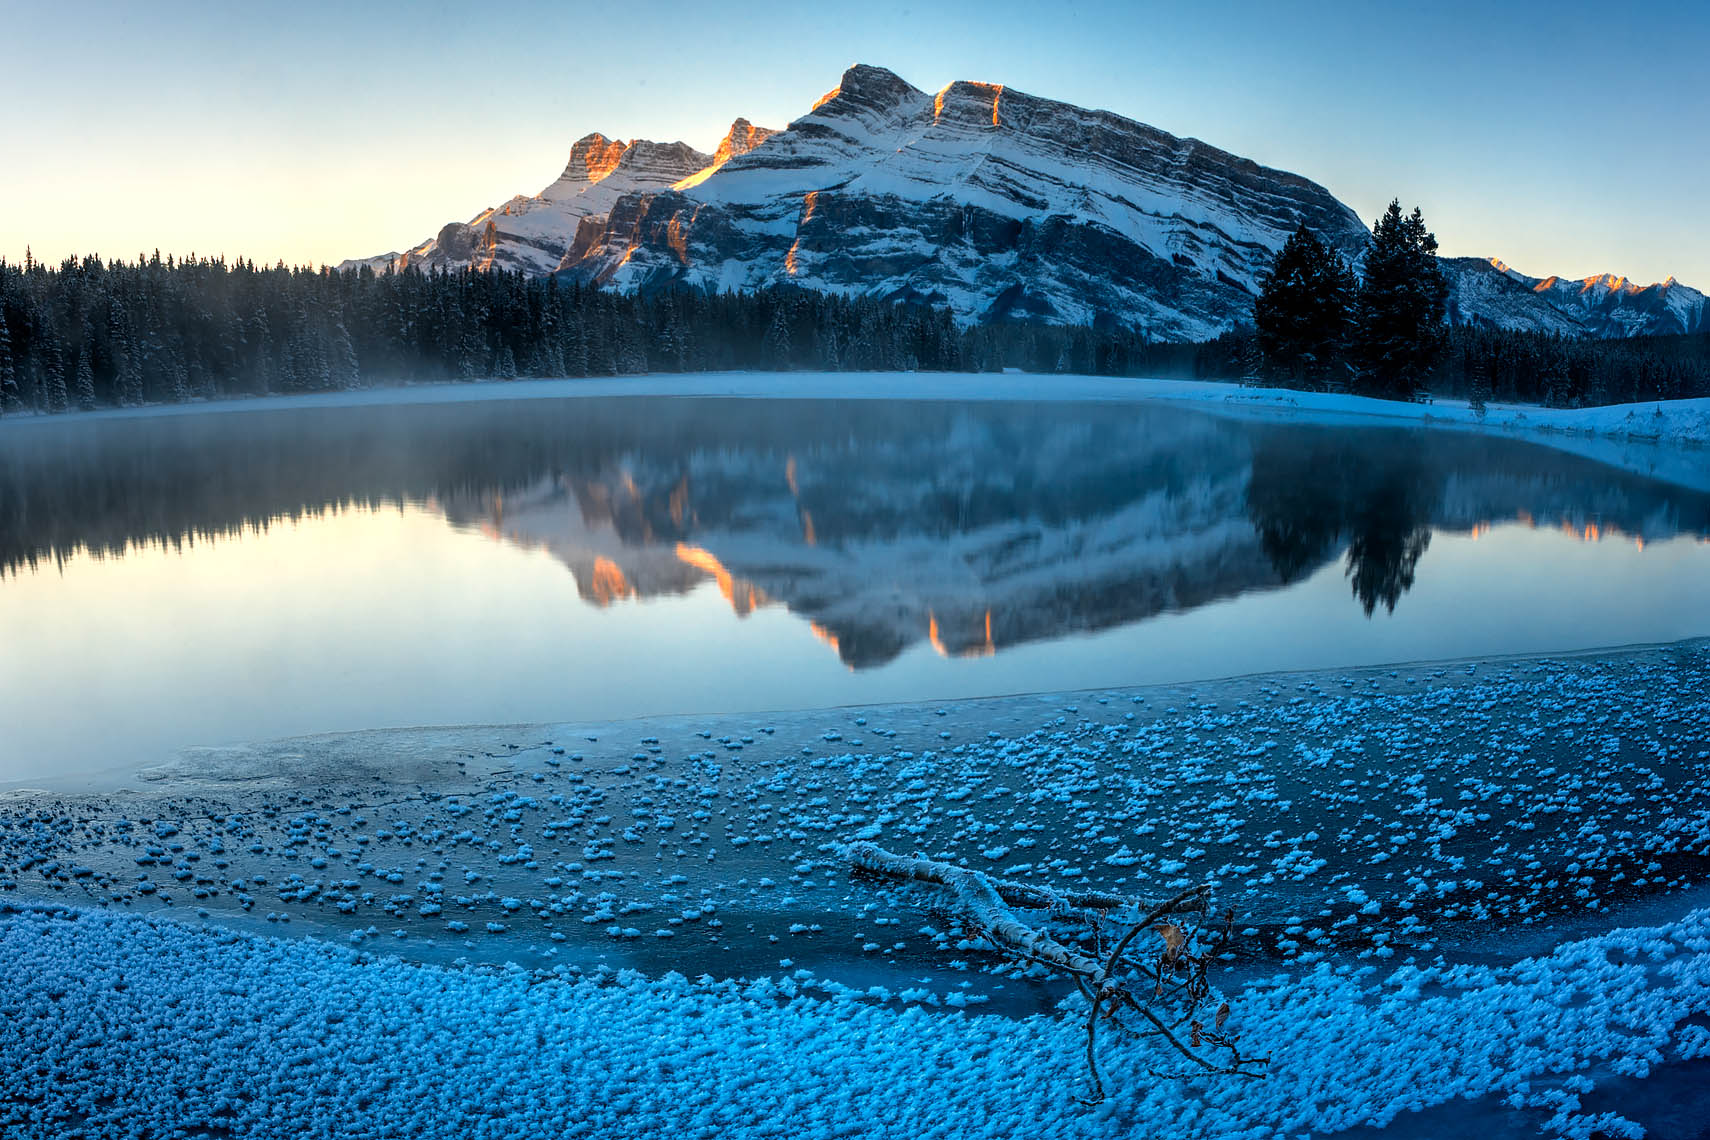 Mt Rundle from Two Jack Lake in Early Winter